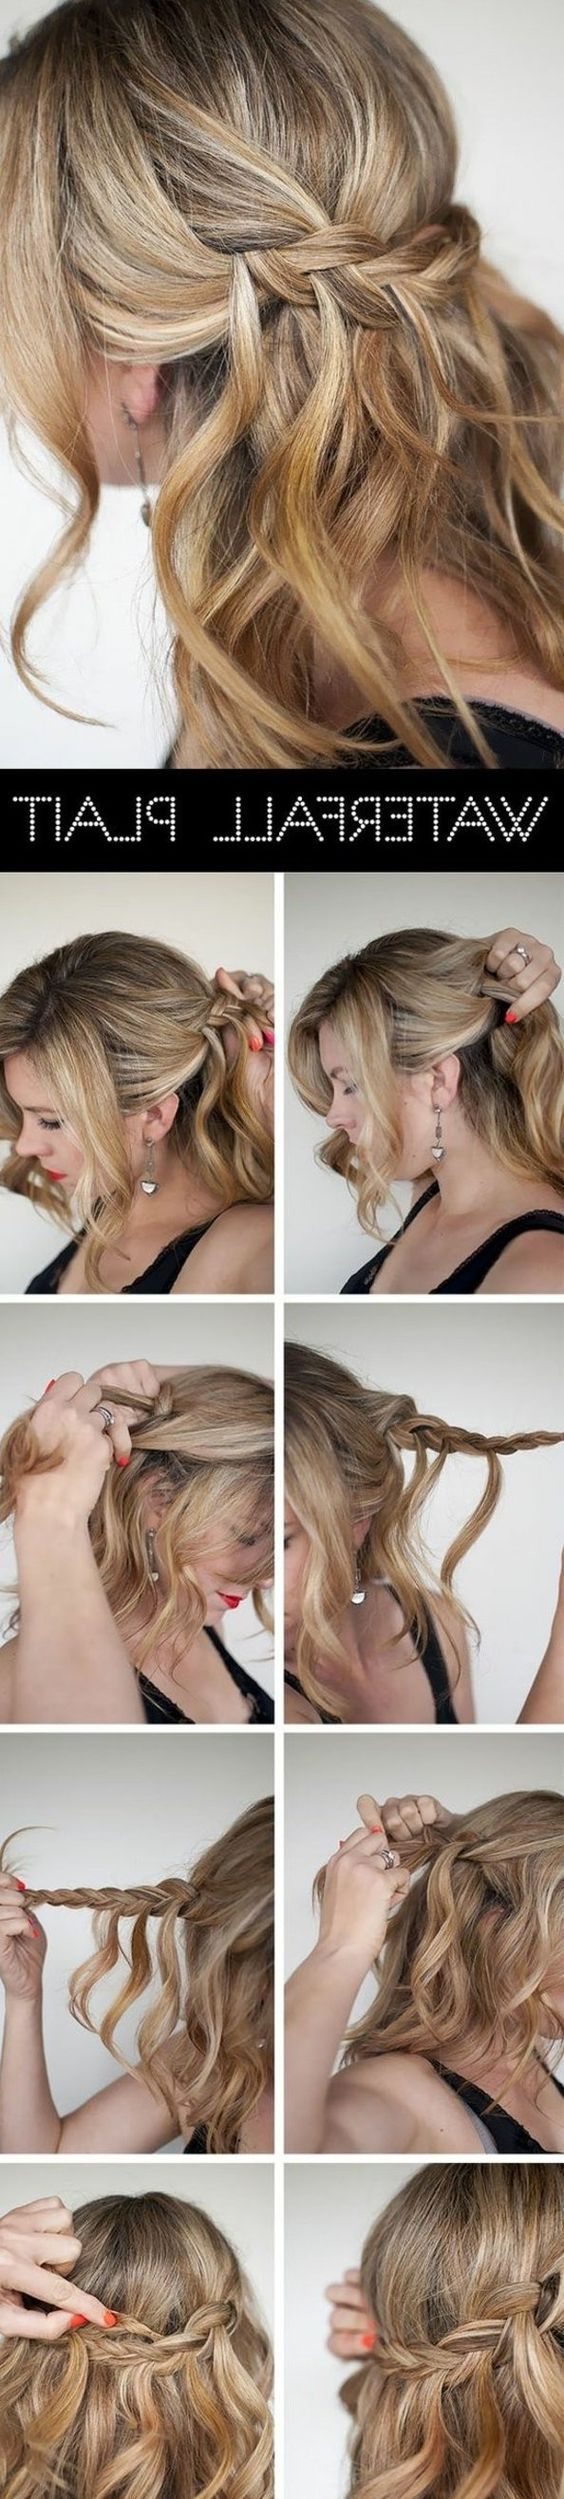 50 ideas for your mid-length hair hairstyle